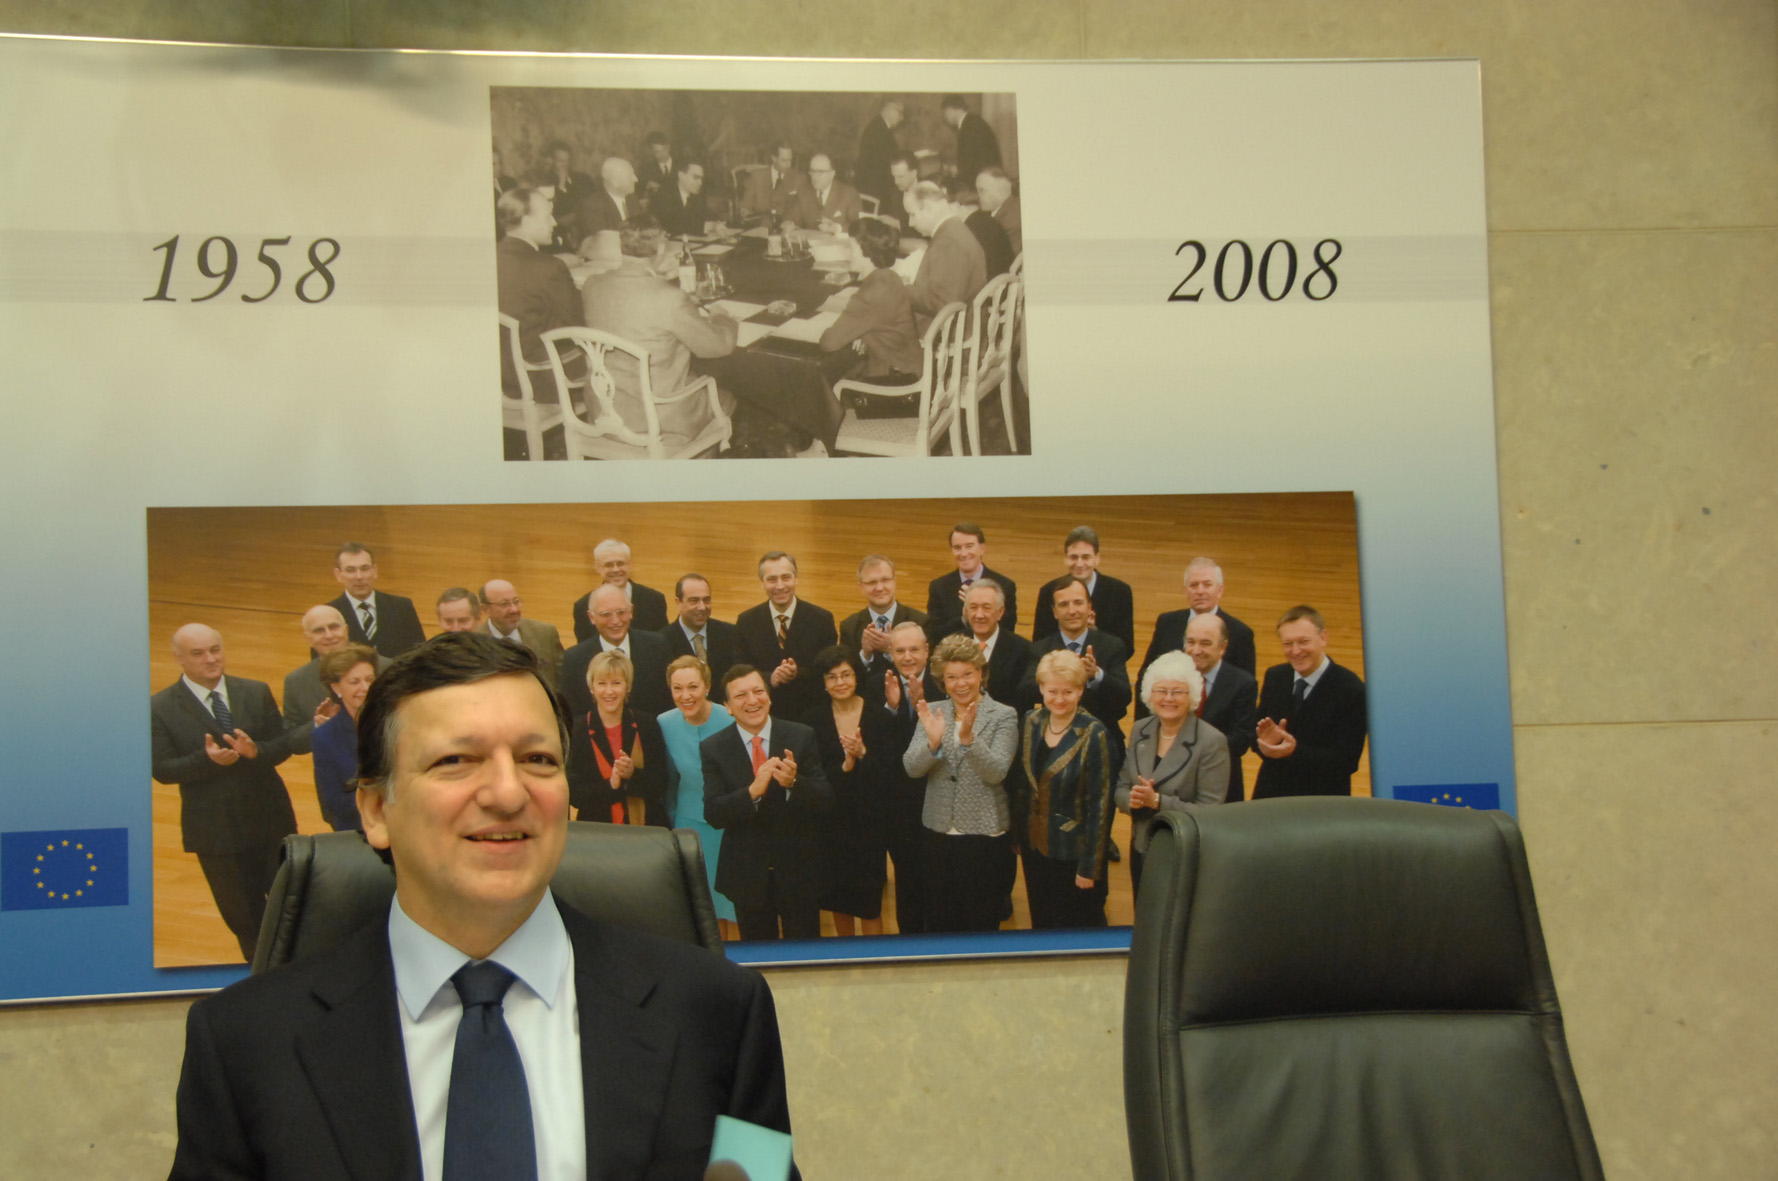 50th anniversary of the first meeting of the European Commission